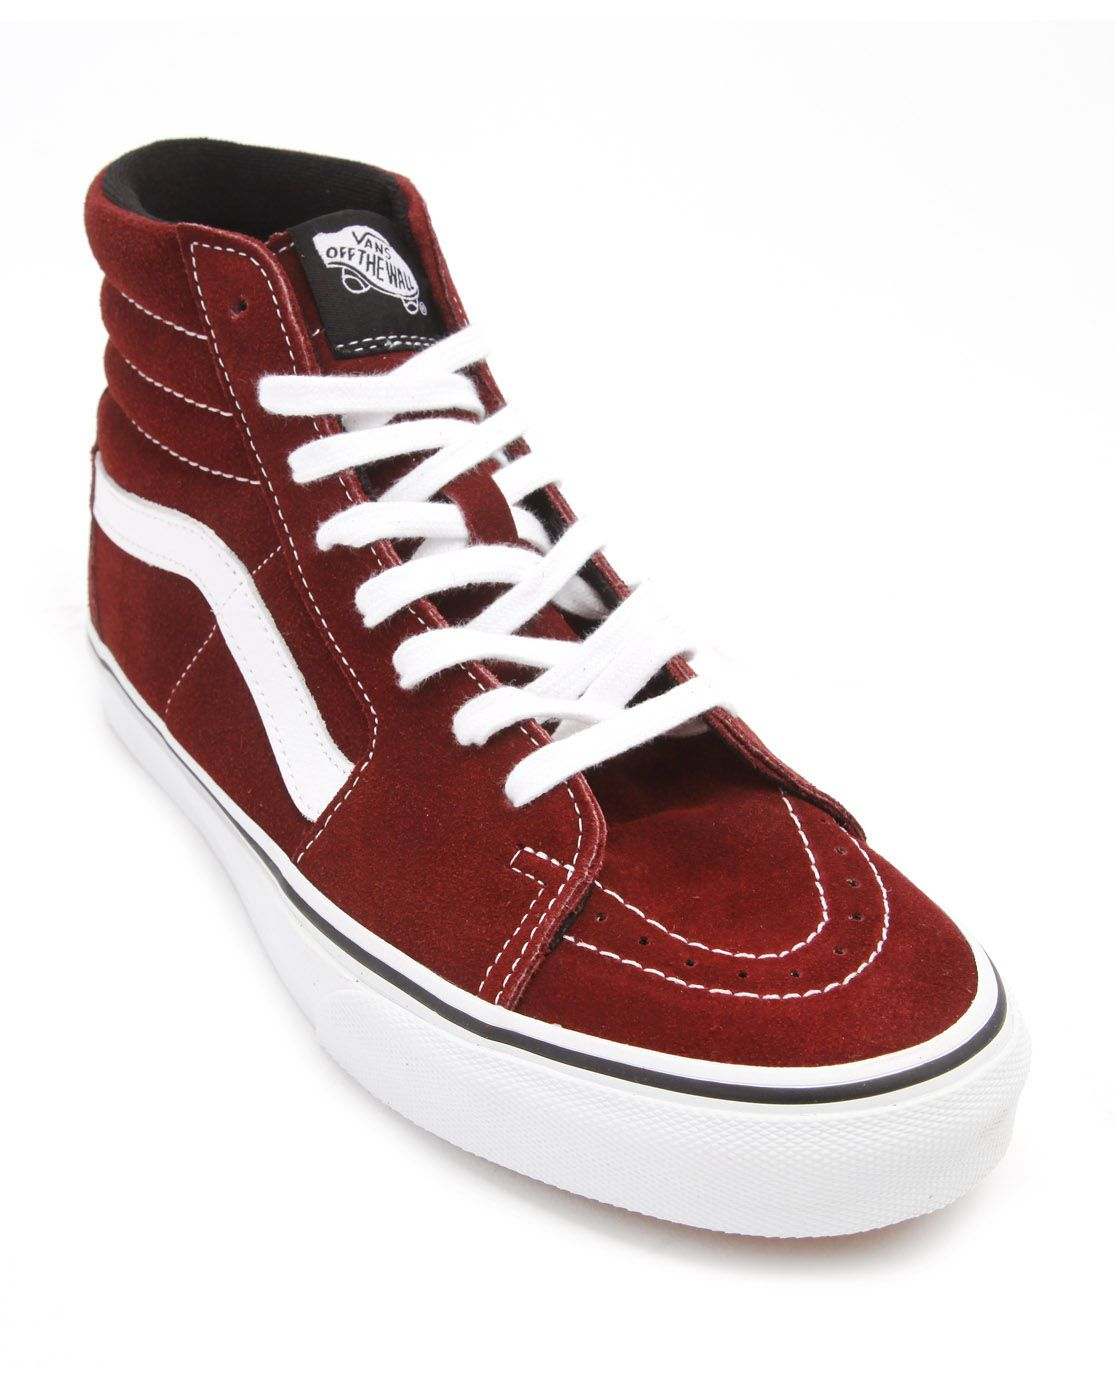 Vans Sneakers | Men's Vans High Tops & Trainers